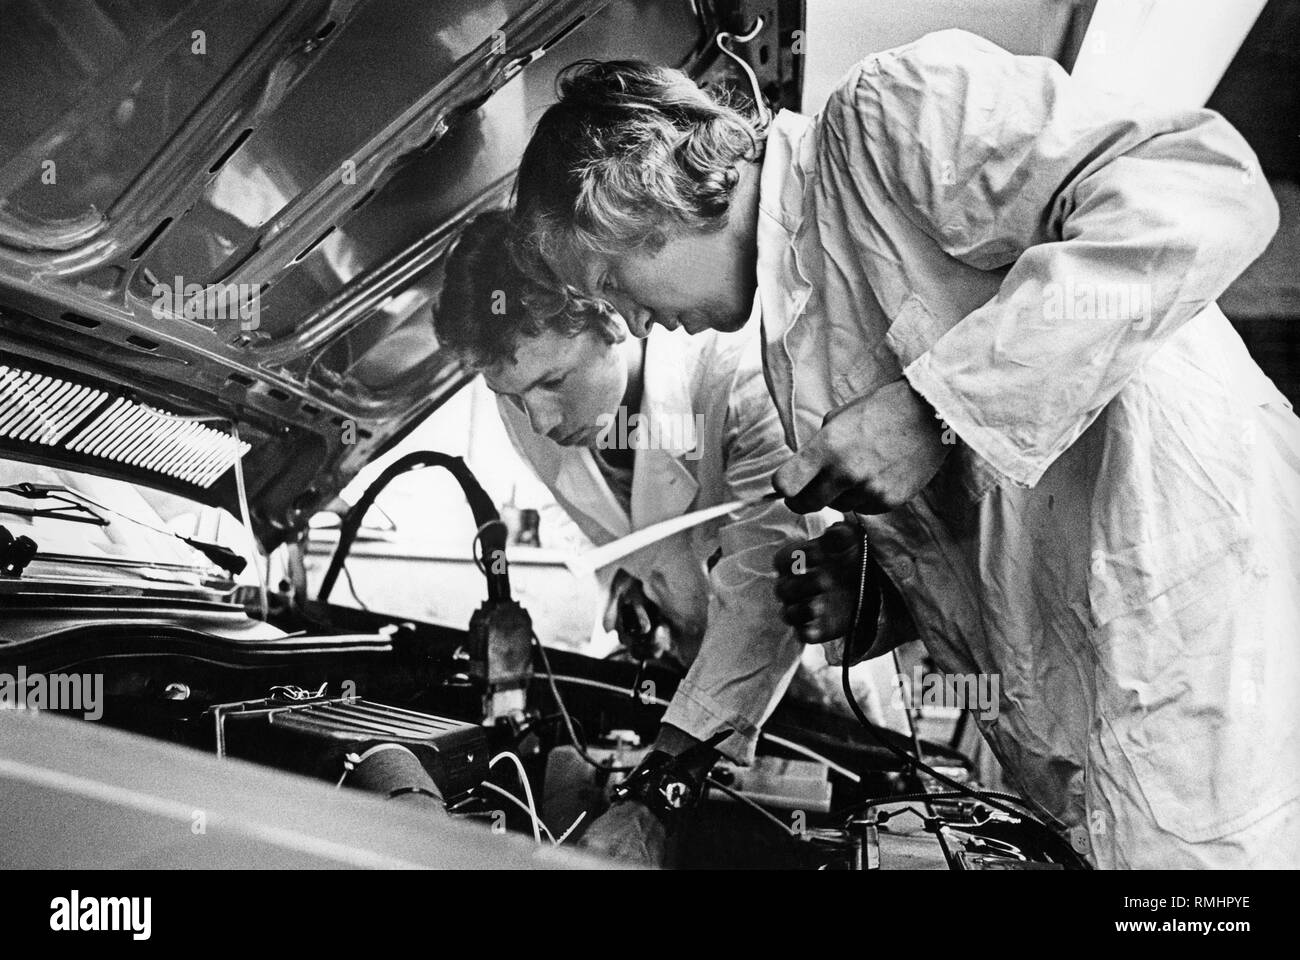 Fault diagnosis with the aid of a car diagnostic device in a workshop (VW / Audi). - Stock Image